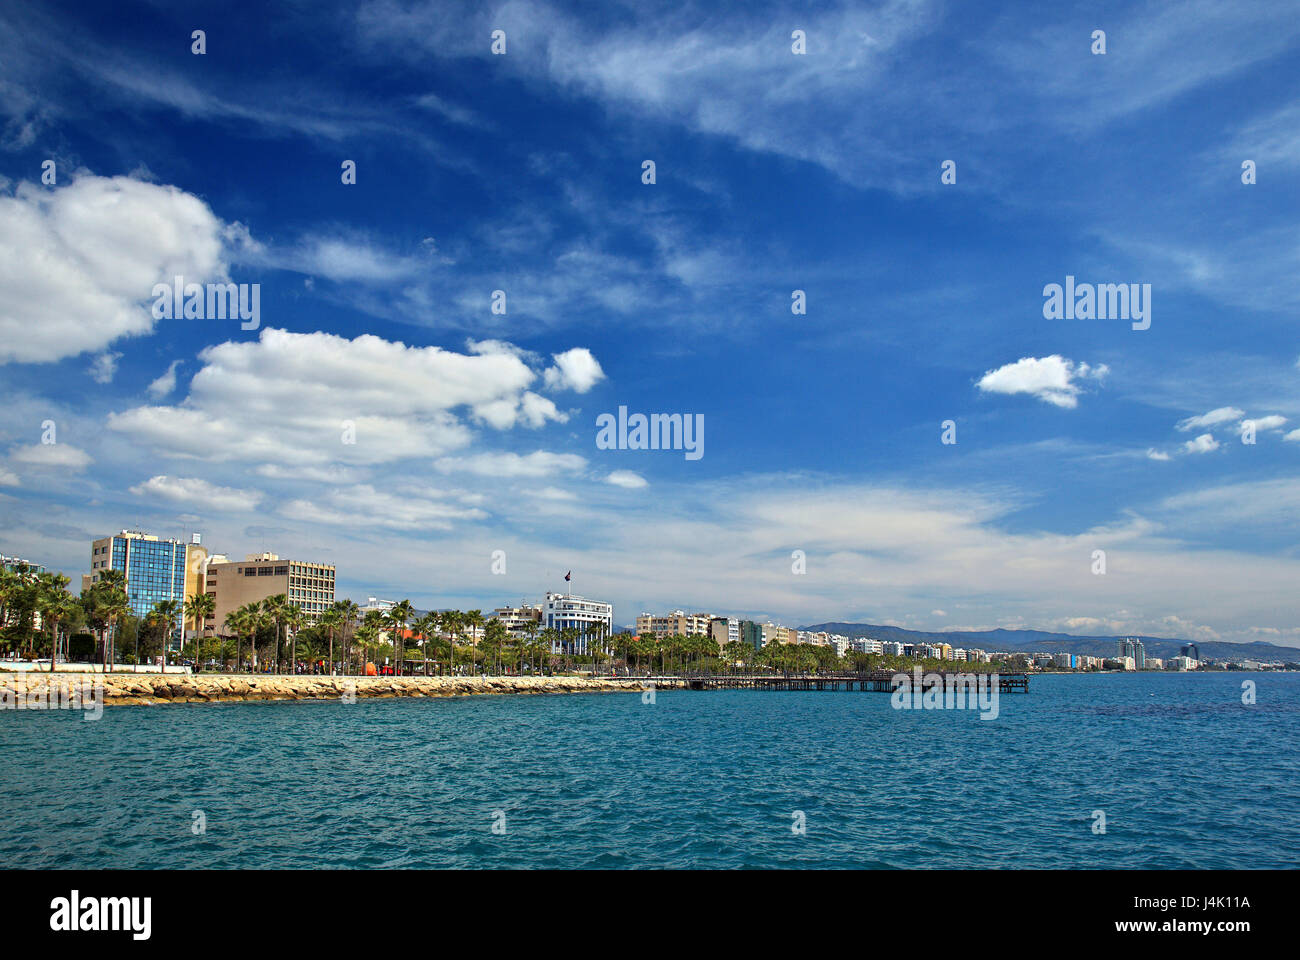 The seafront of Limassol (Lemessos) town, Cyprus. - Stock Image